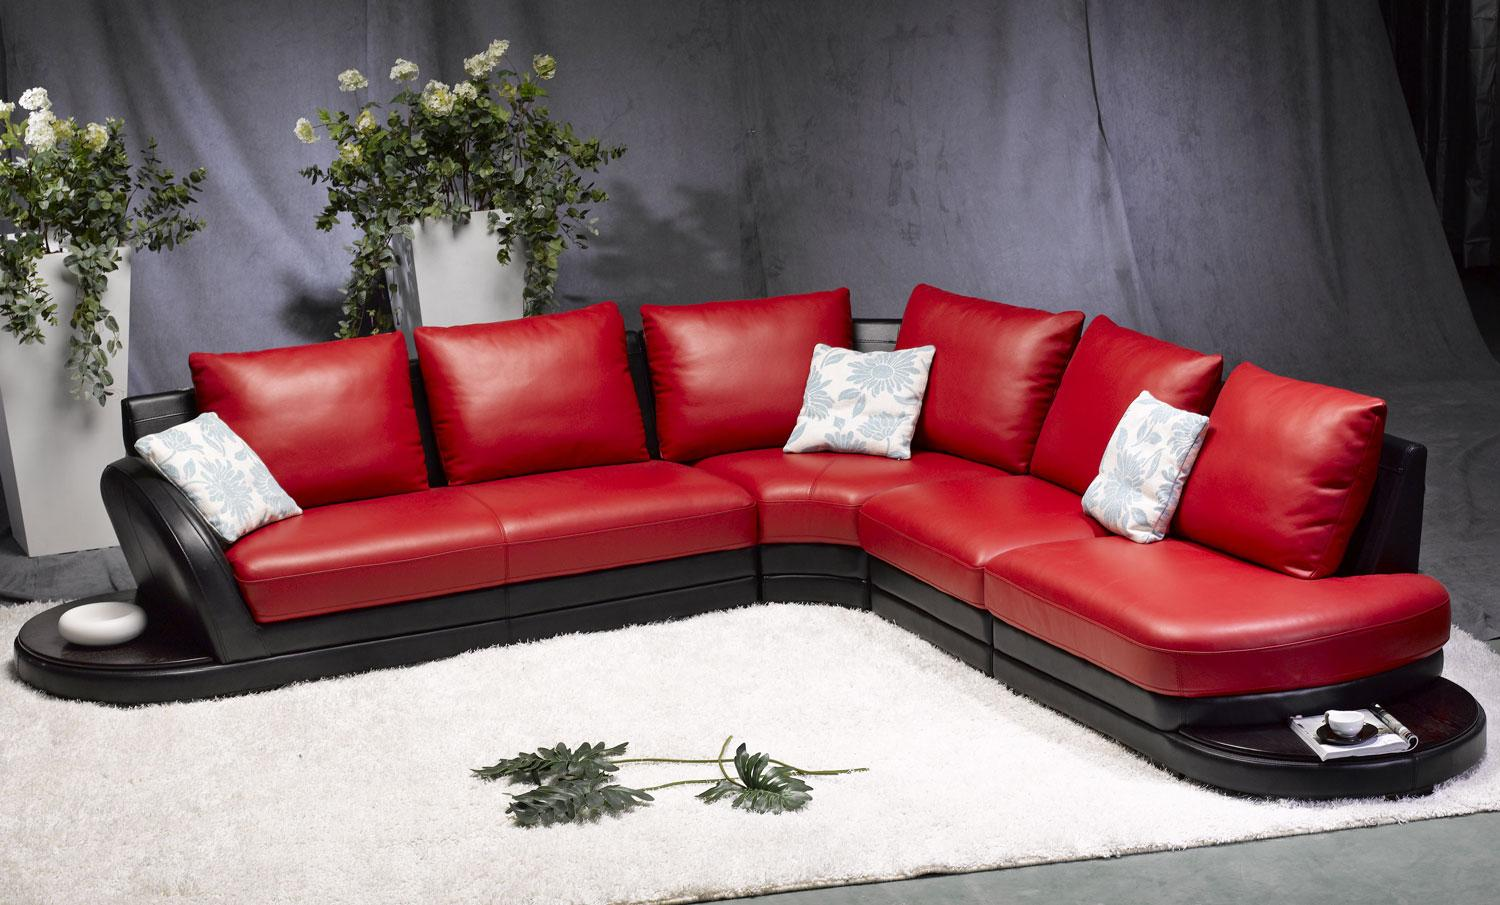 Red And Black Leather Couches